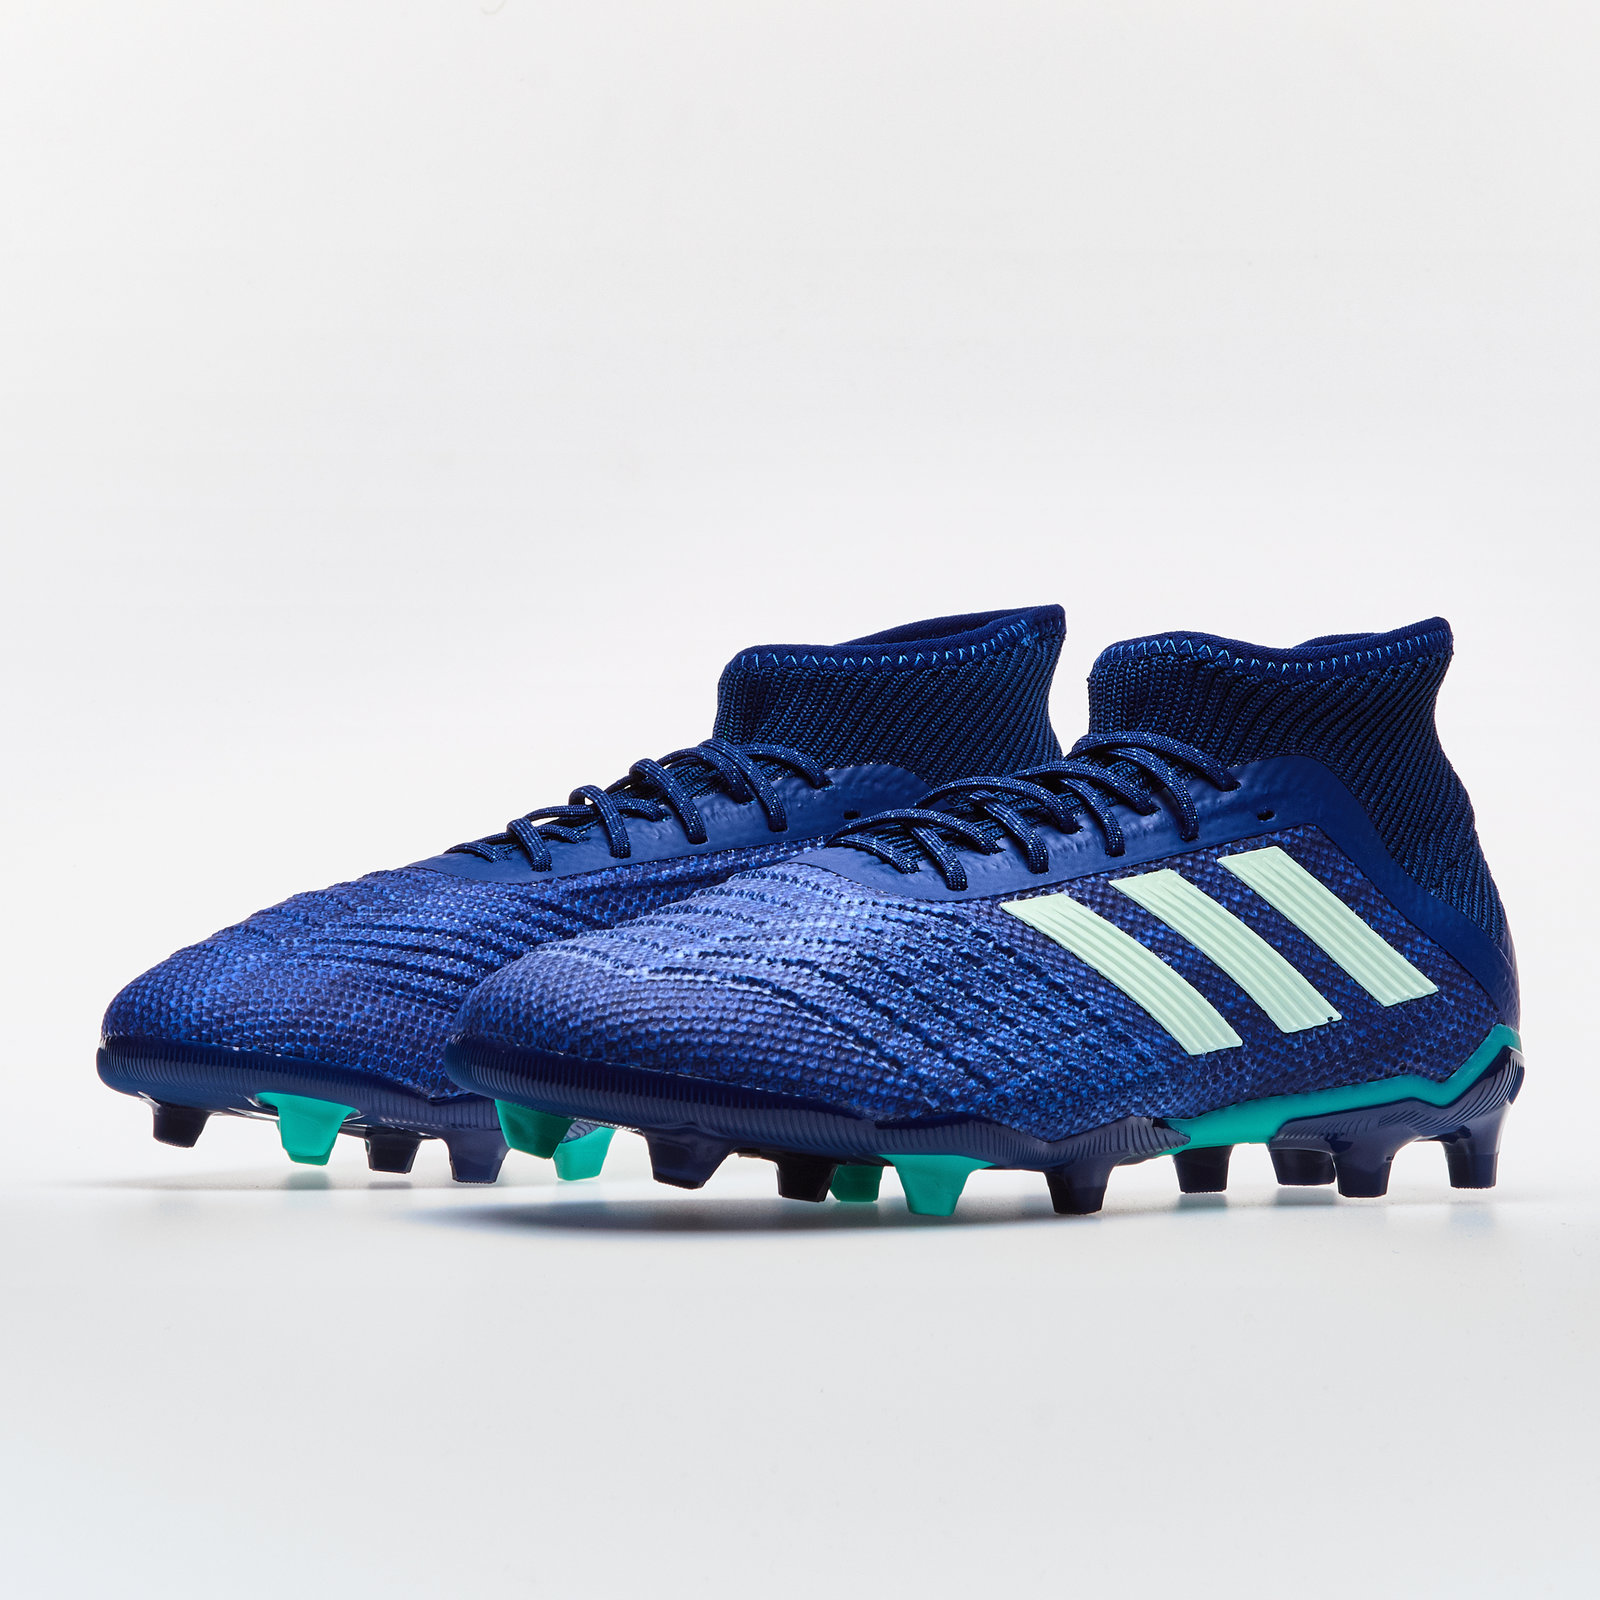 6706456c269 Details about adidas Predator 18.1 Firm Ground Kids Football Boots Studs Trainers  Sports Shoes